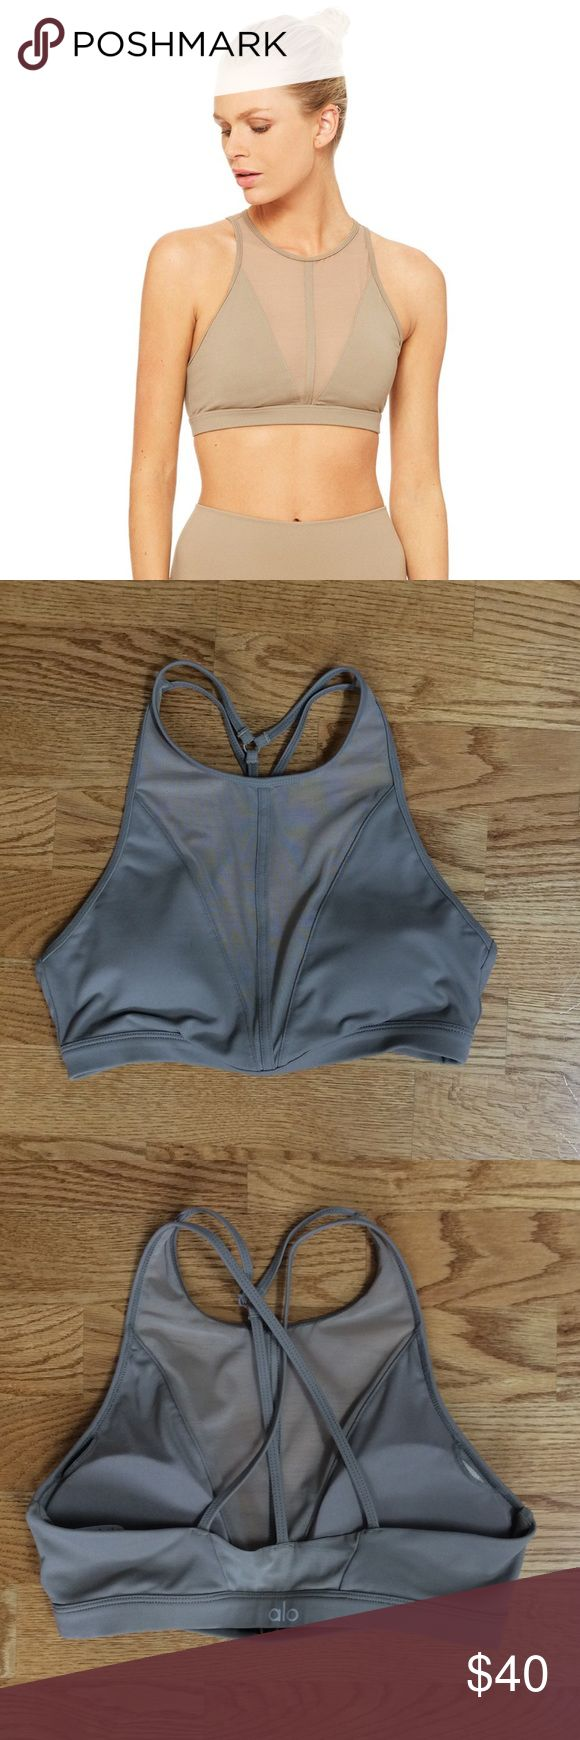 Alo yoga Empower sports bra Like new condition, worn once color is gravel size small ALO Yoga Intimates & Sleepwear Bras